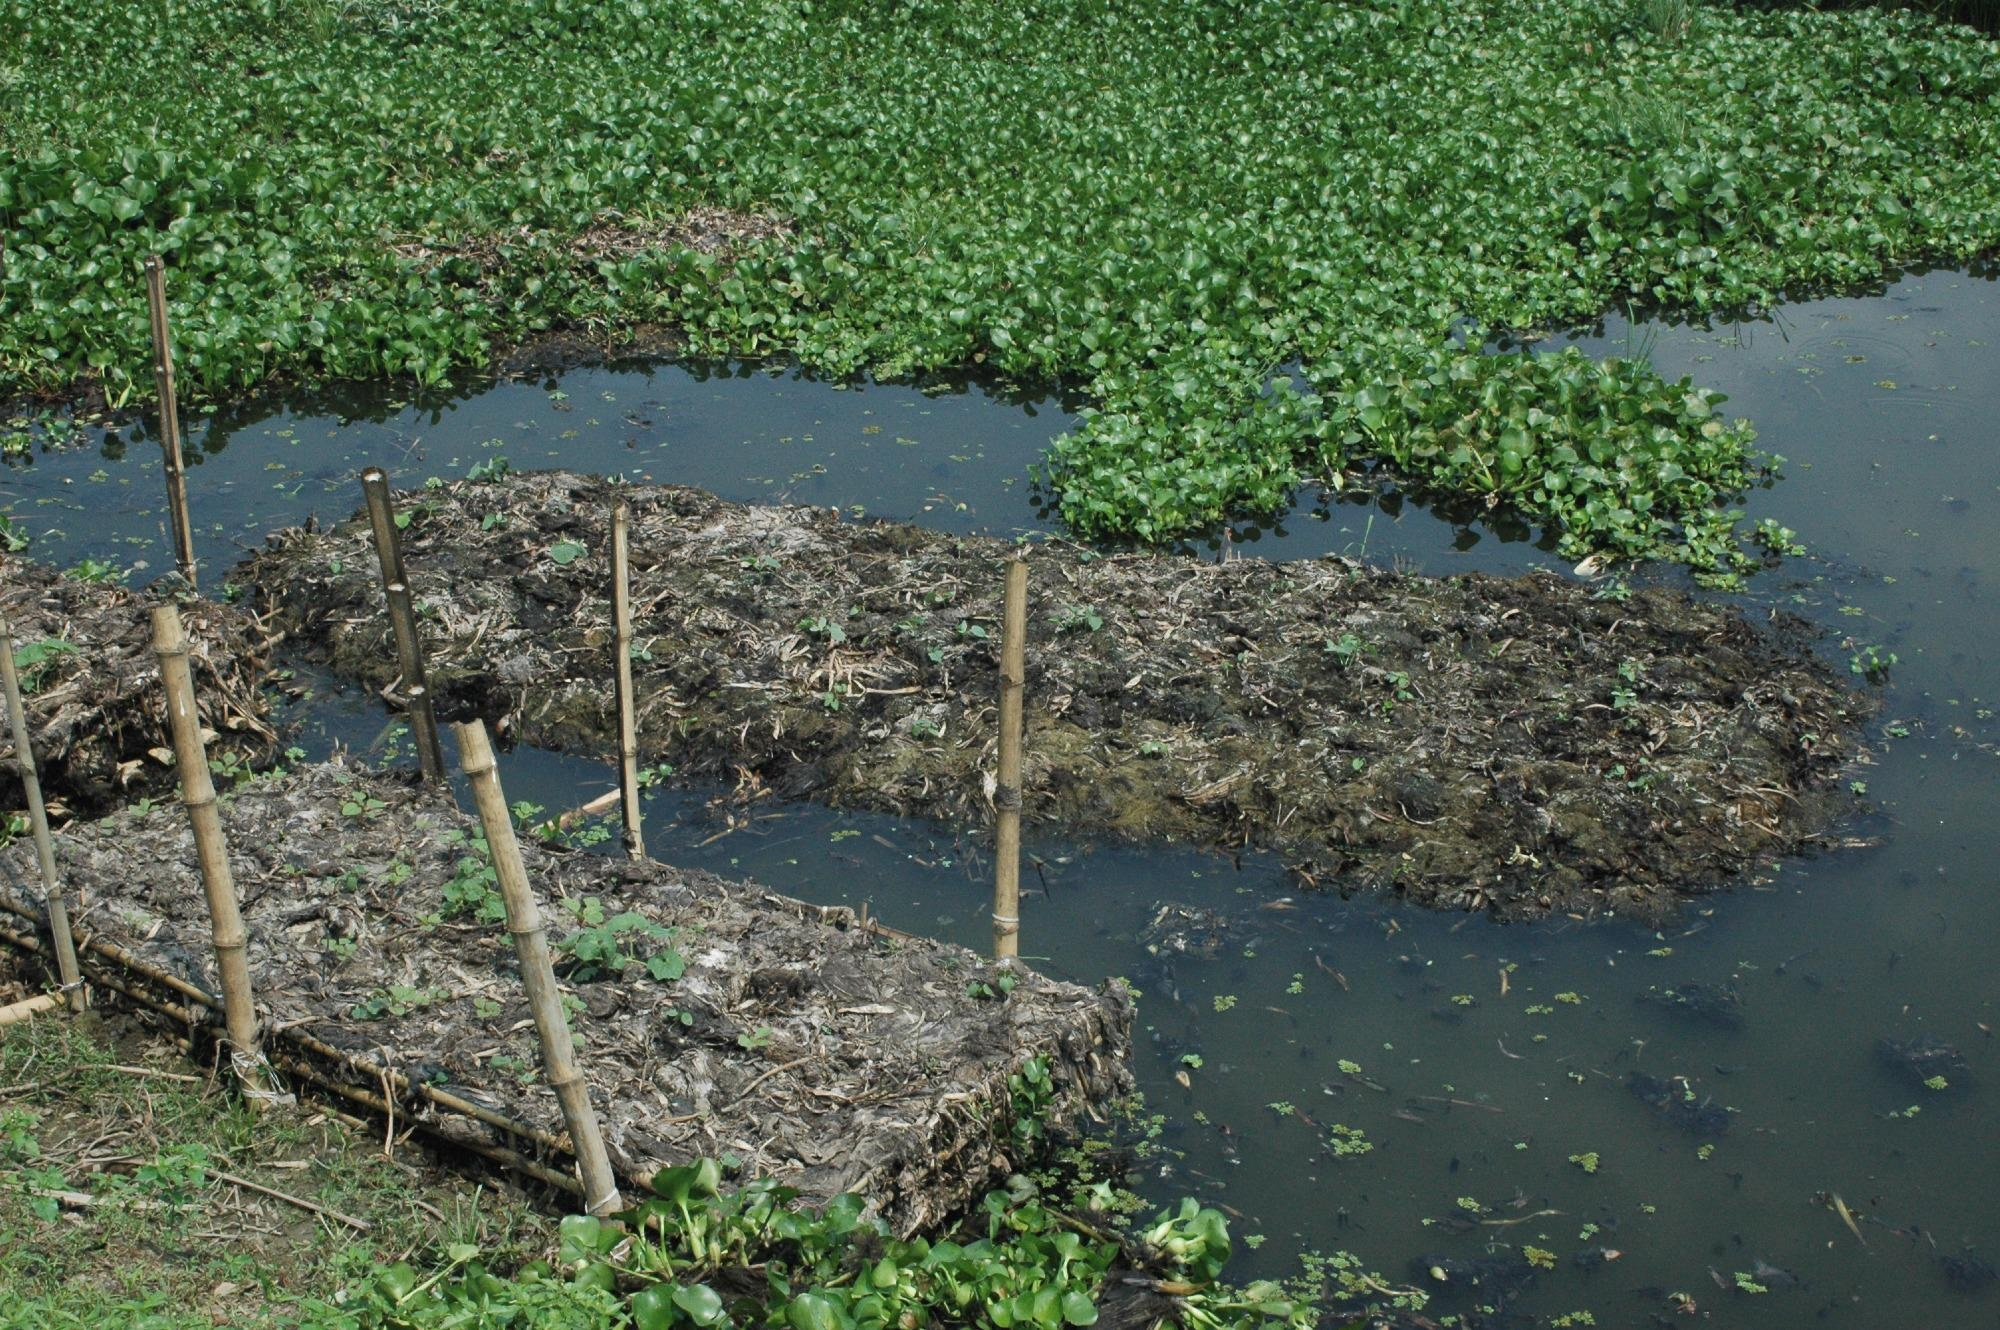 The floating gardens of Bangladesh could offer a roadmap for sustainable agriculture as the climate changes, a new study shows.